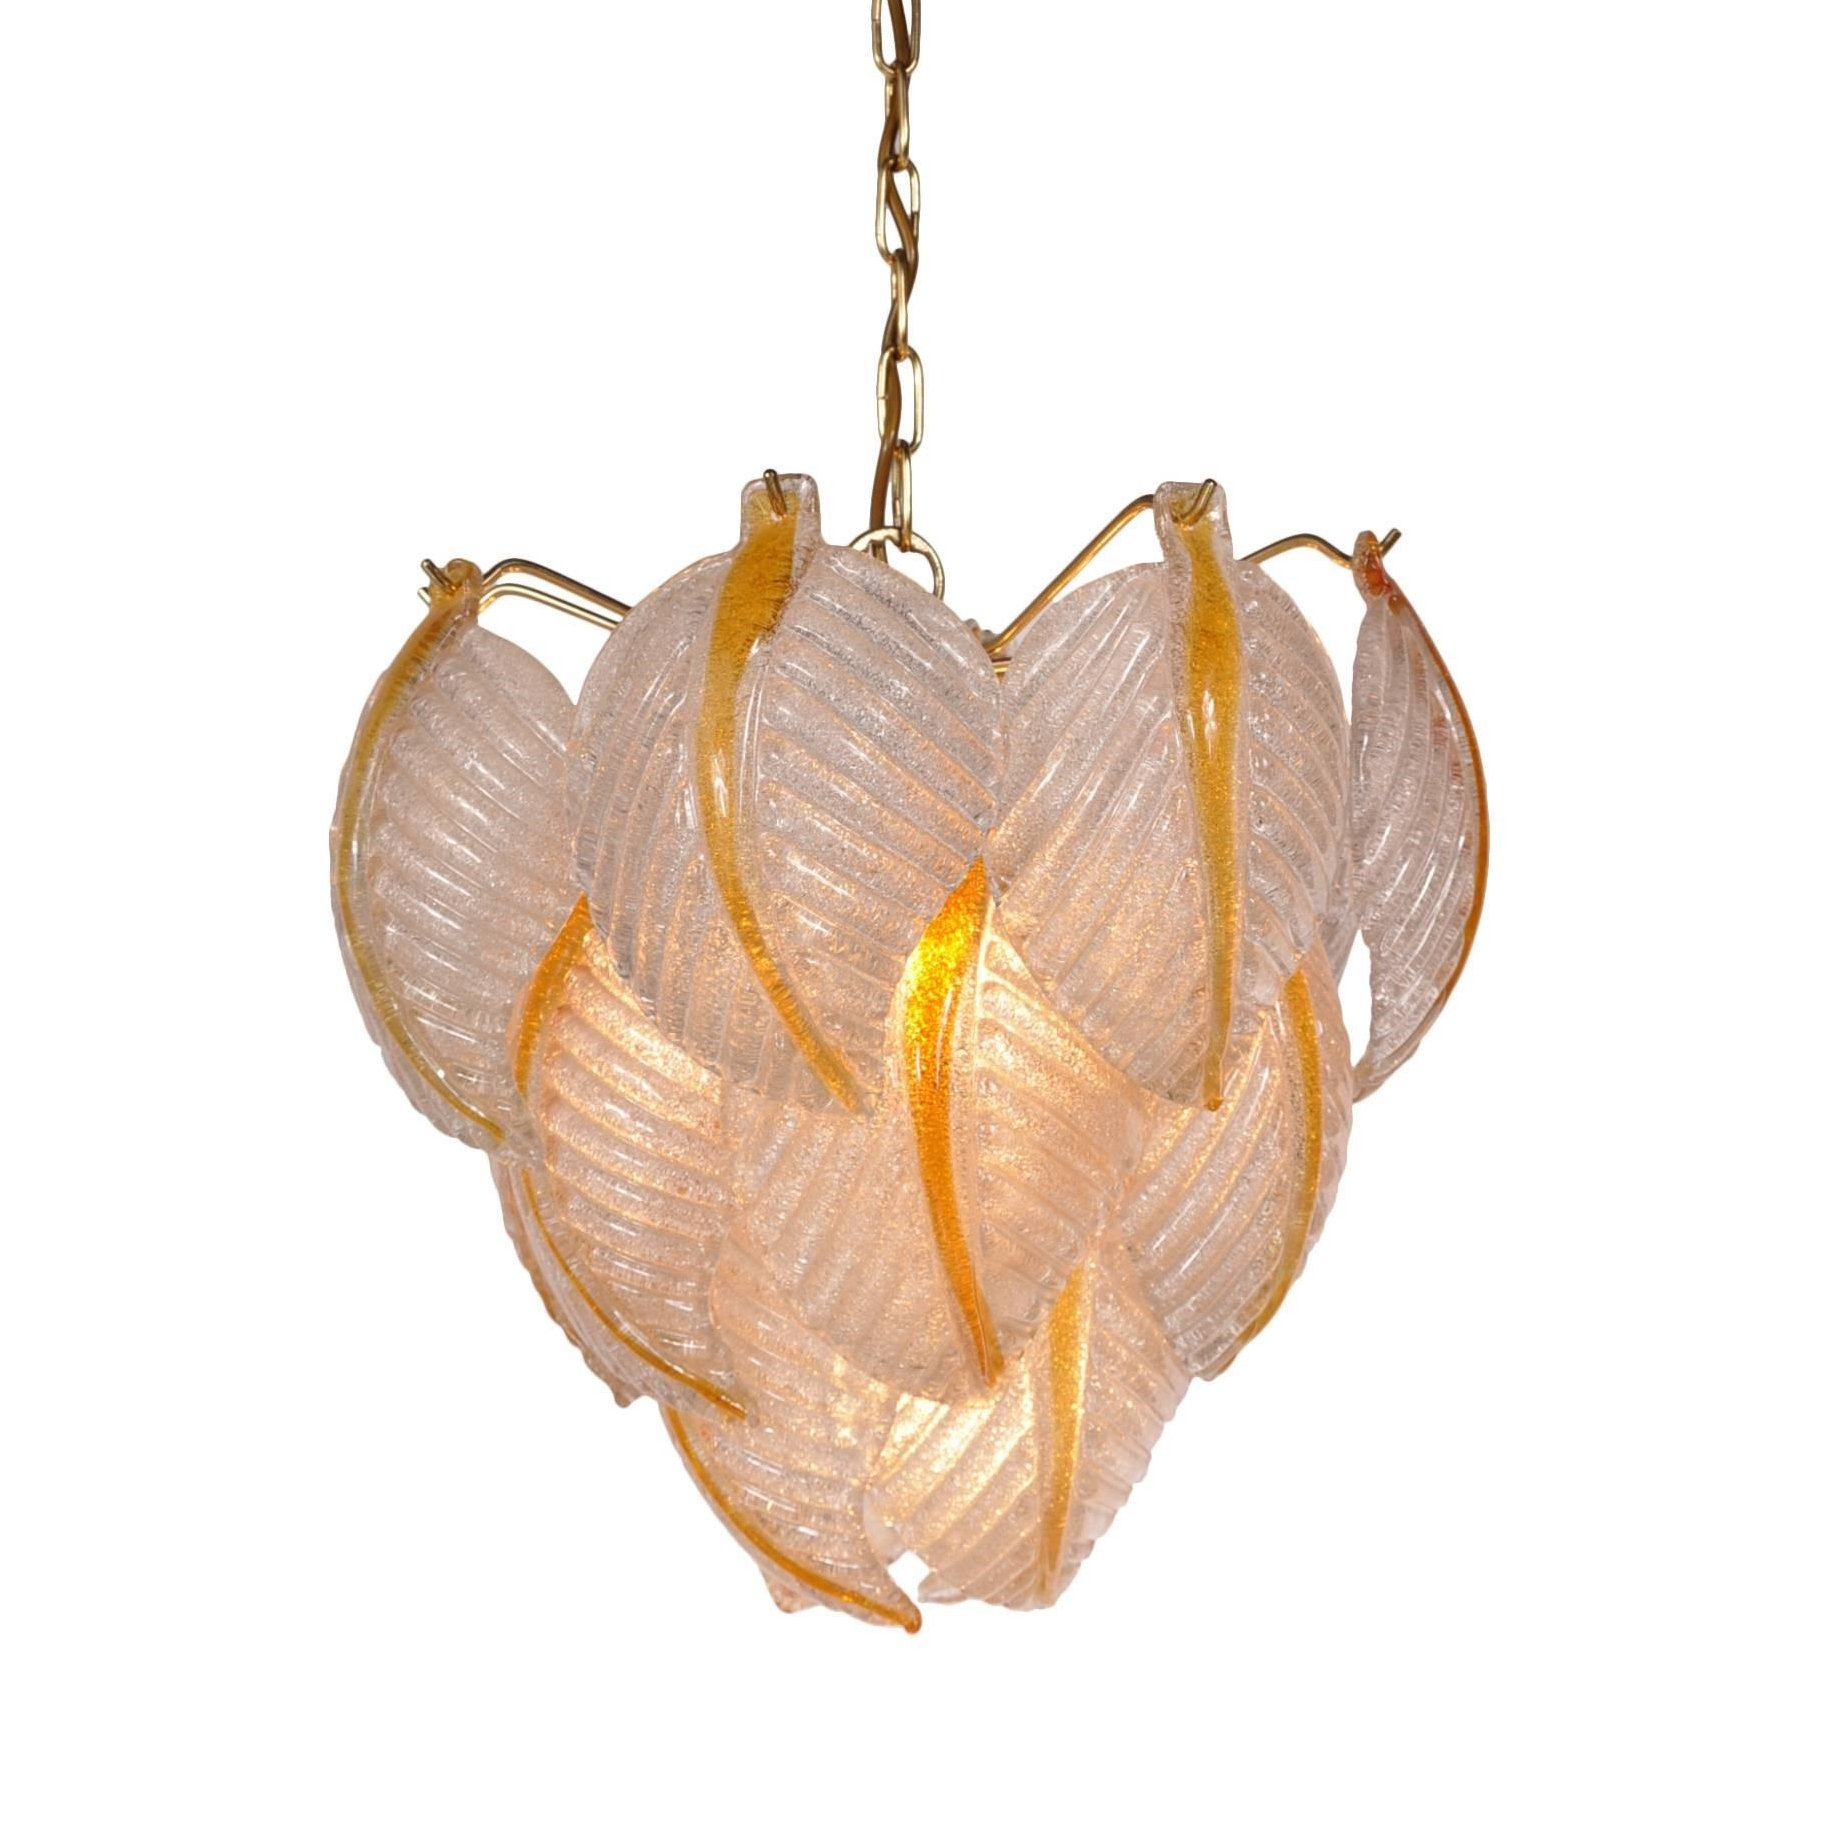 1960s Murano Gl Pendant Lamp By